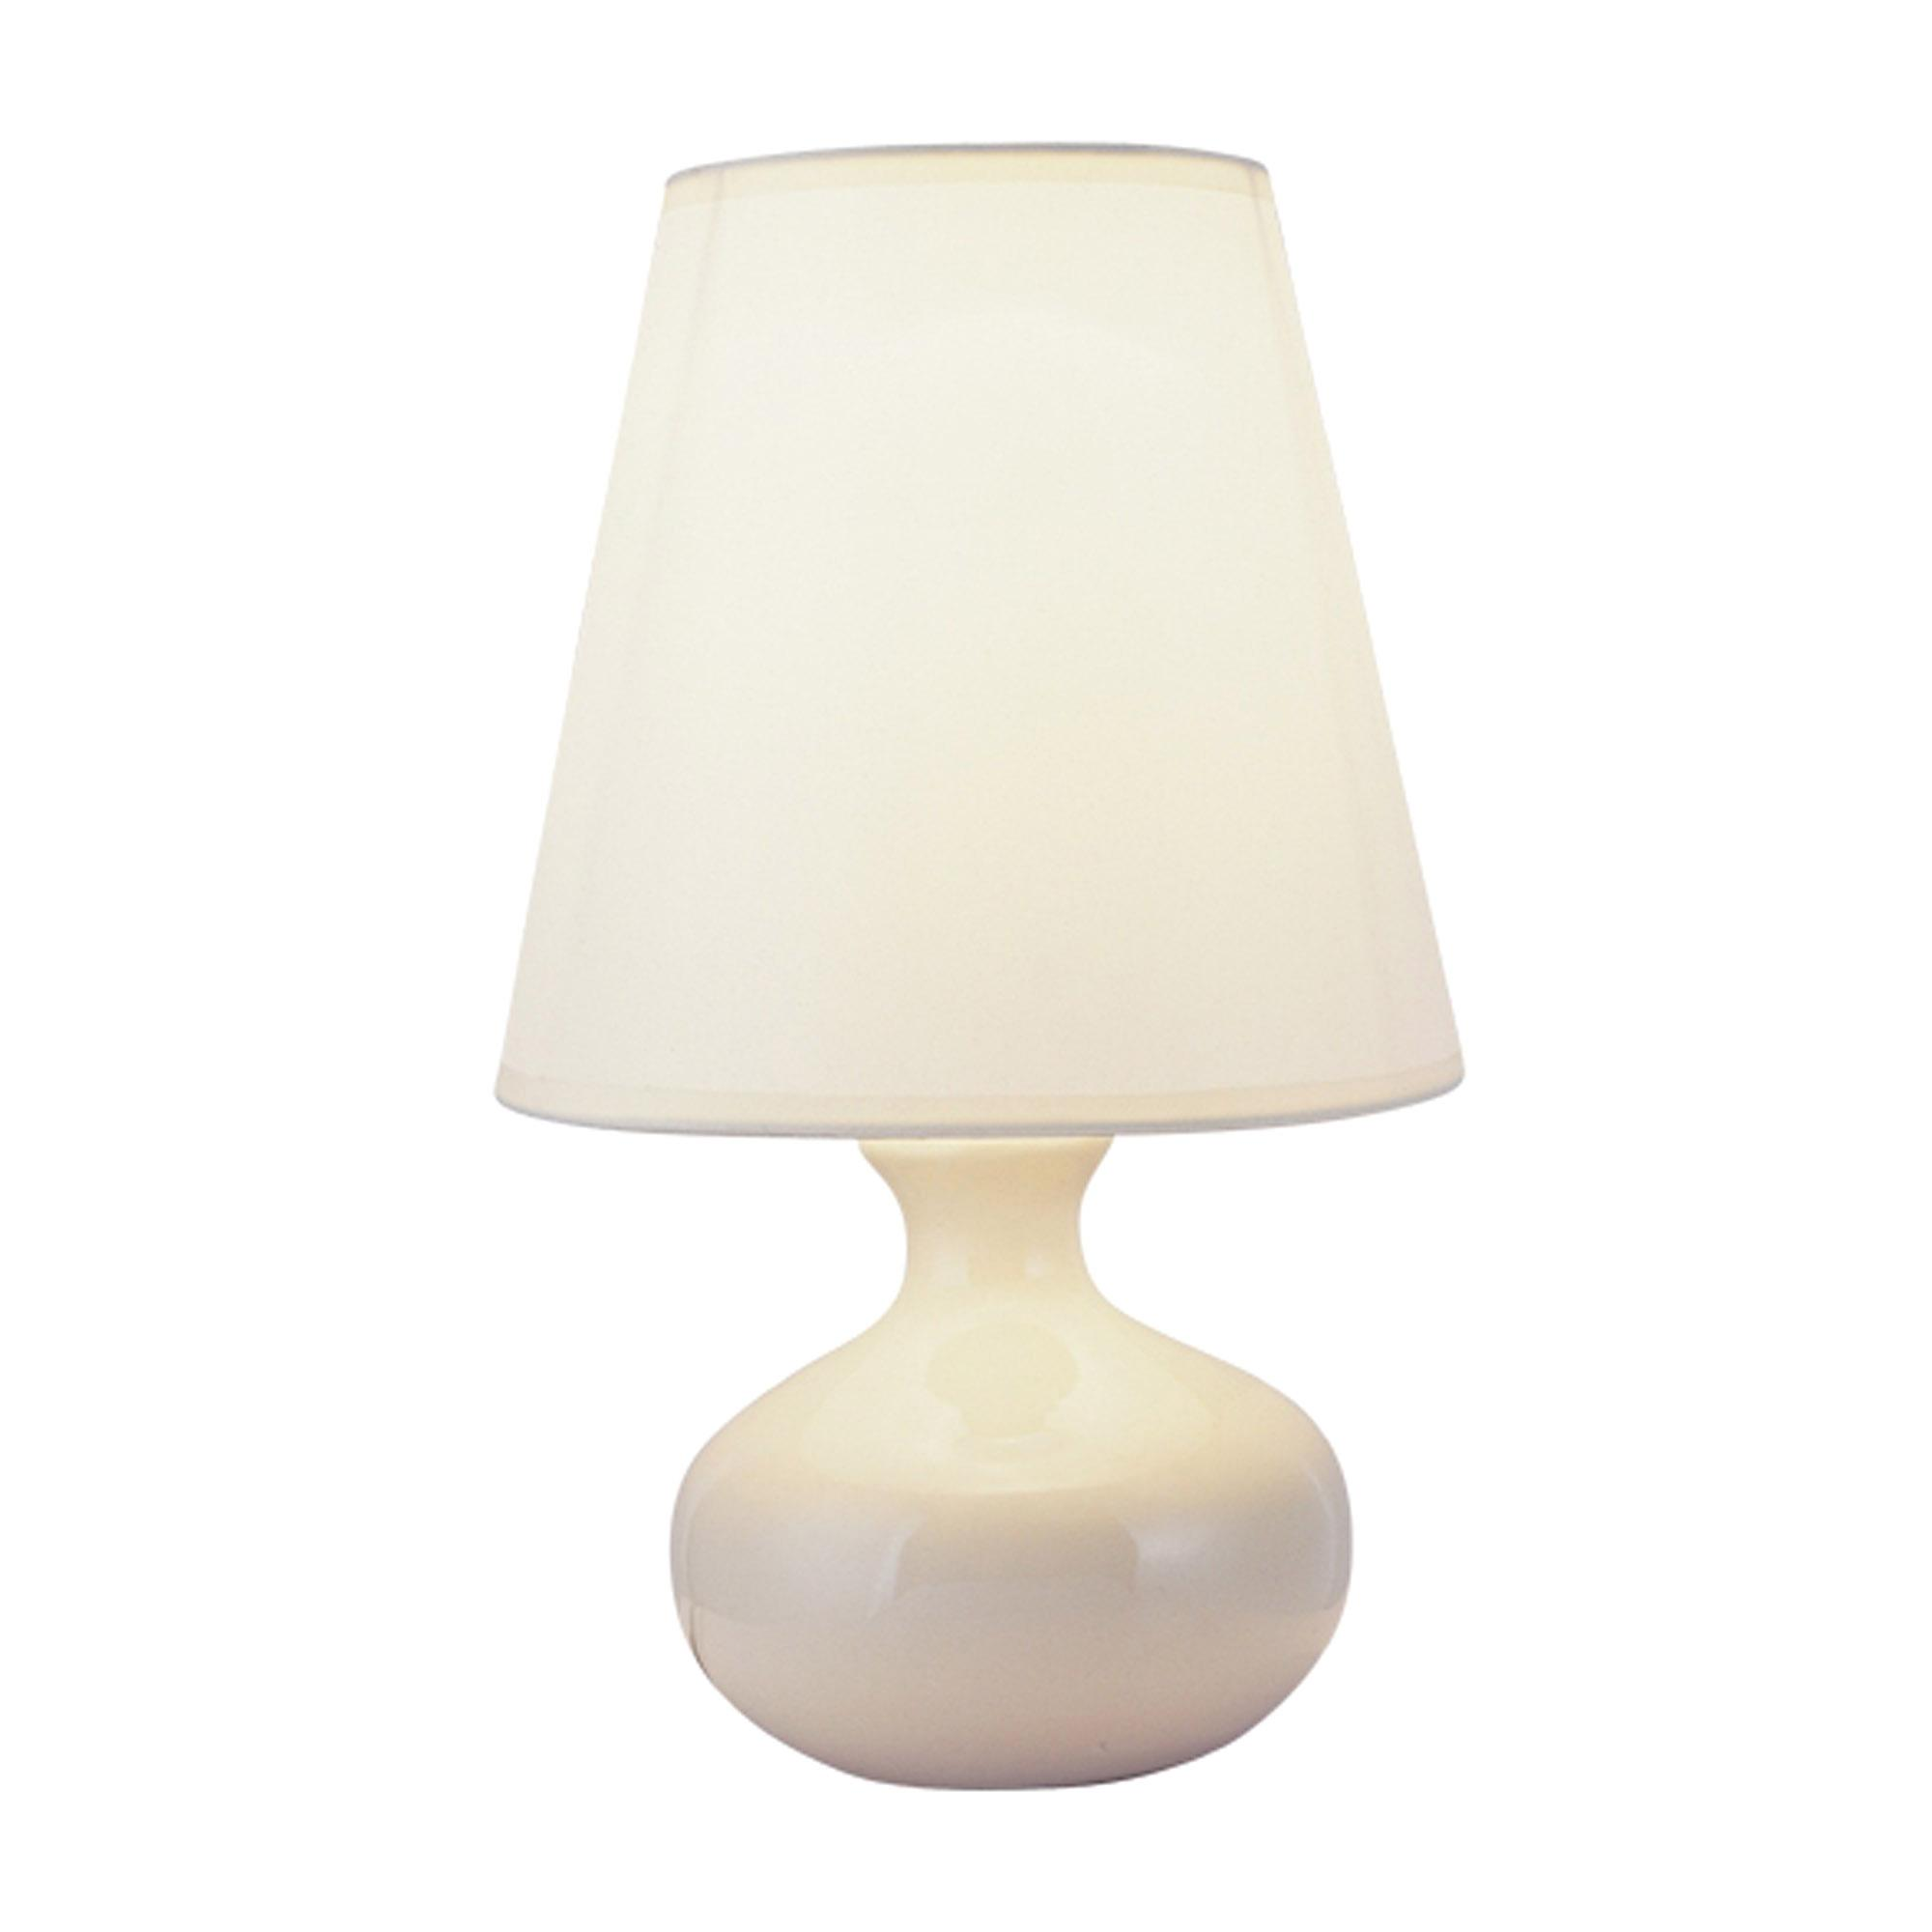 ORE International 12 Ceramic Table Lamp By OJ Commerce